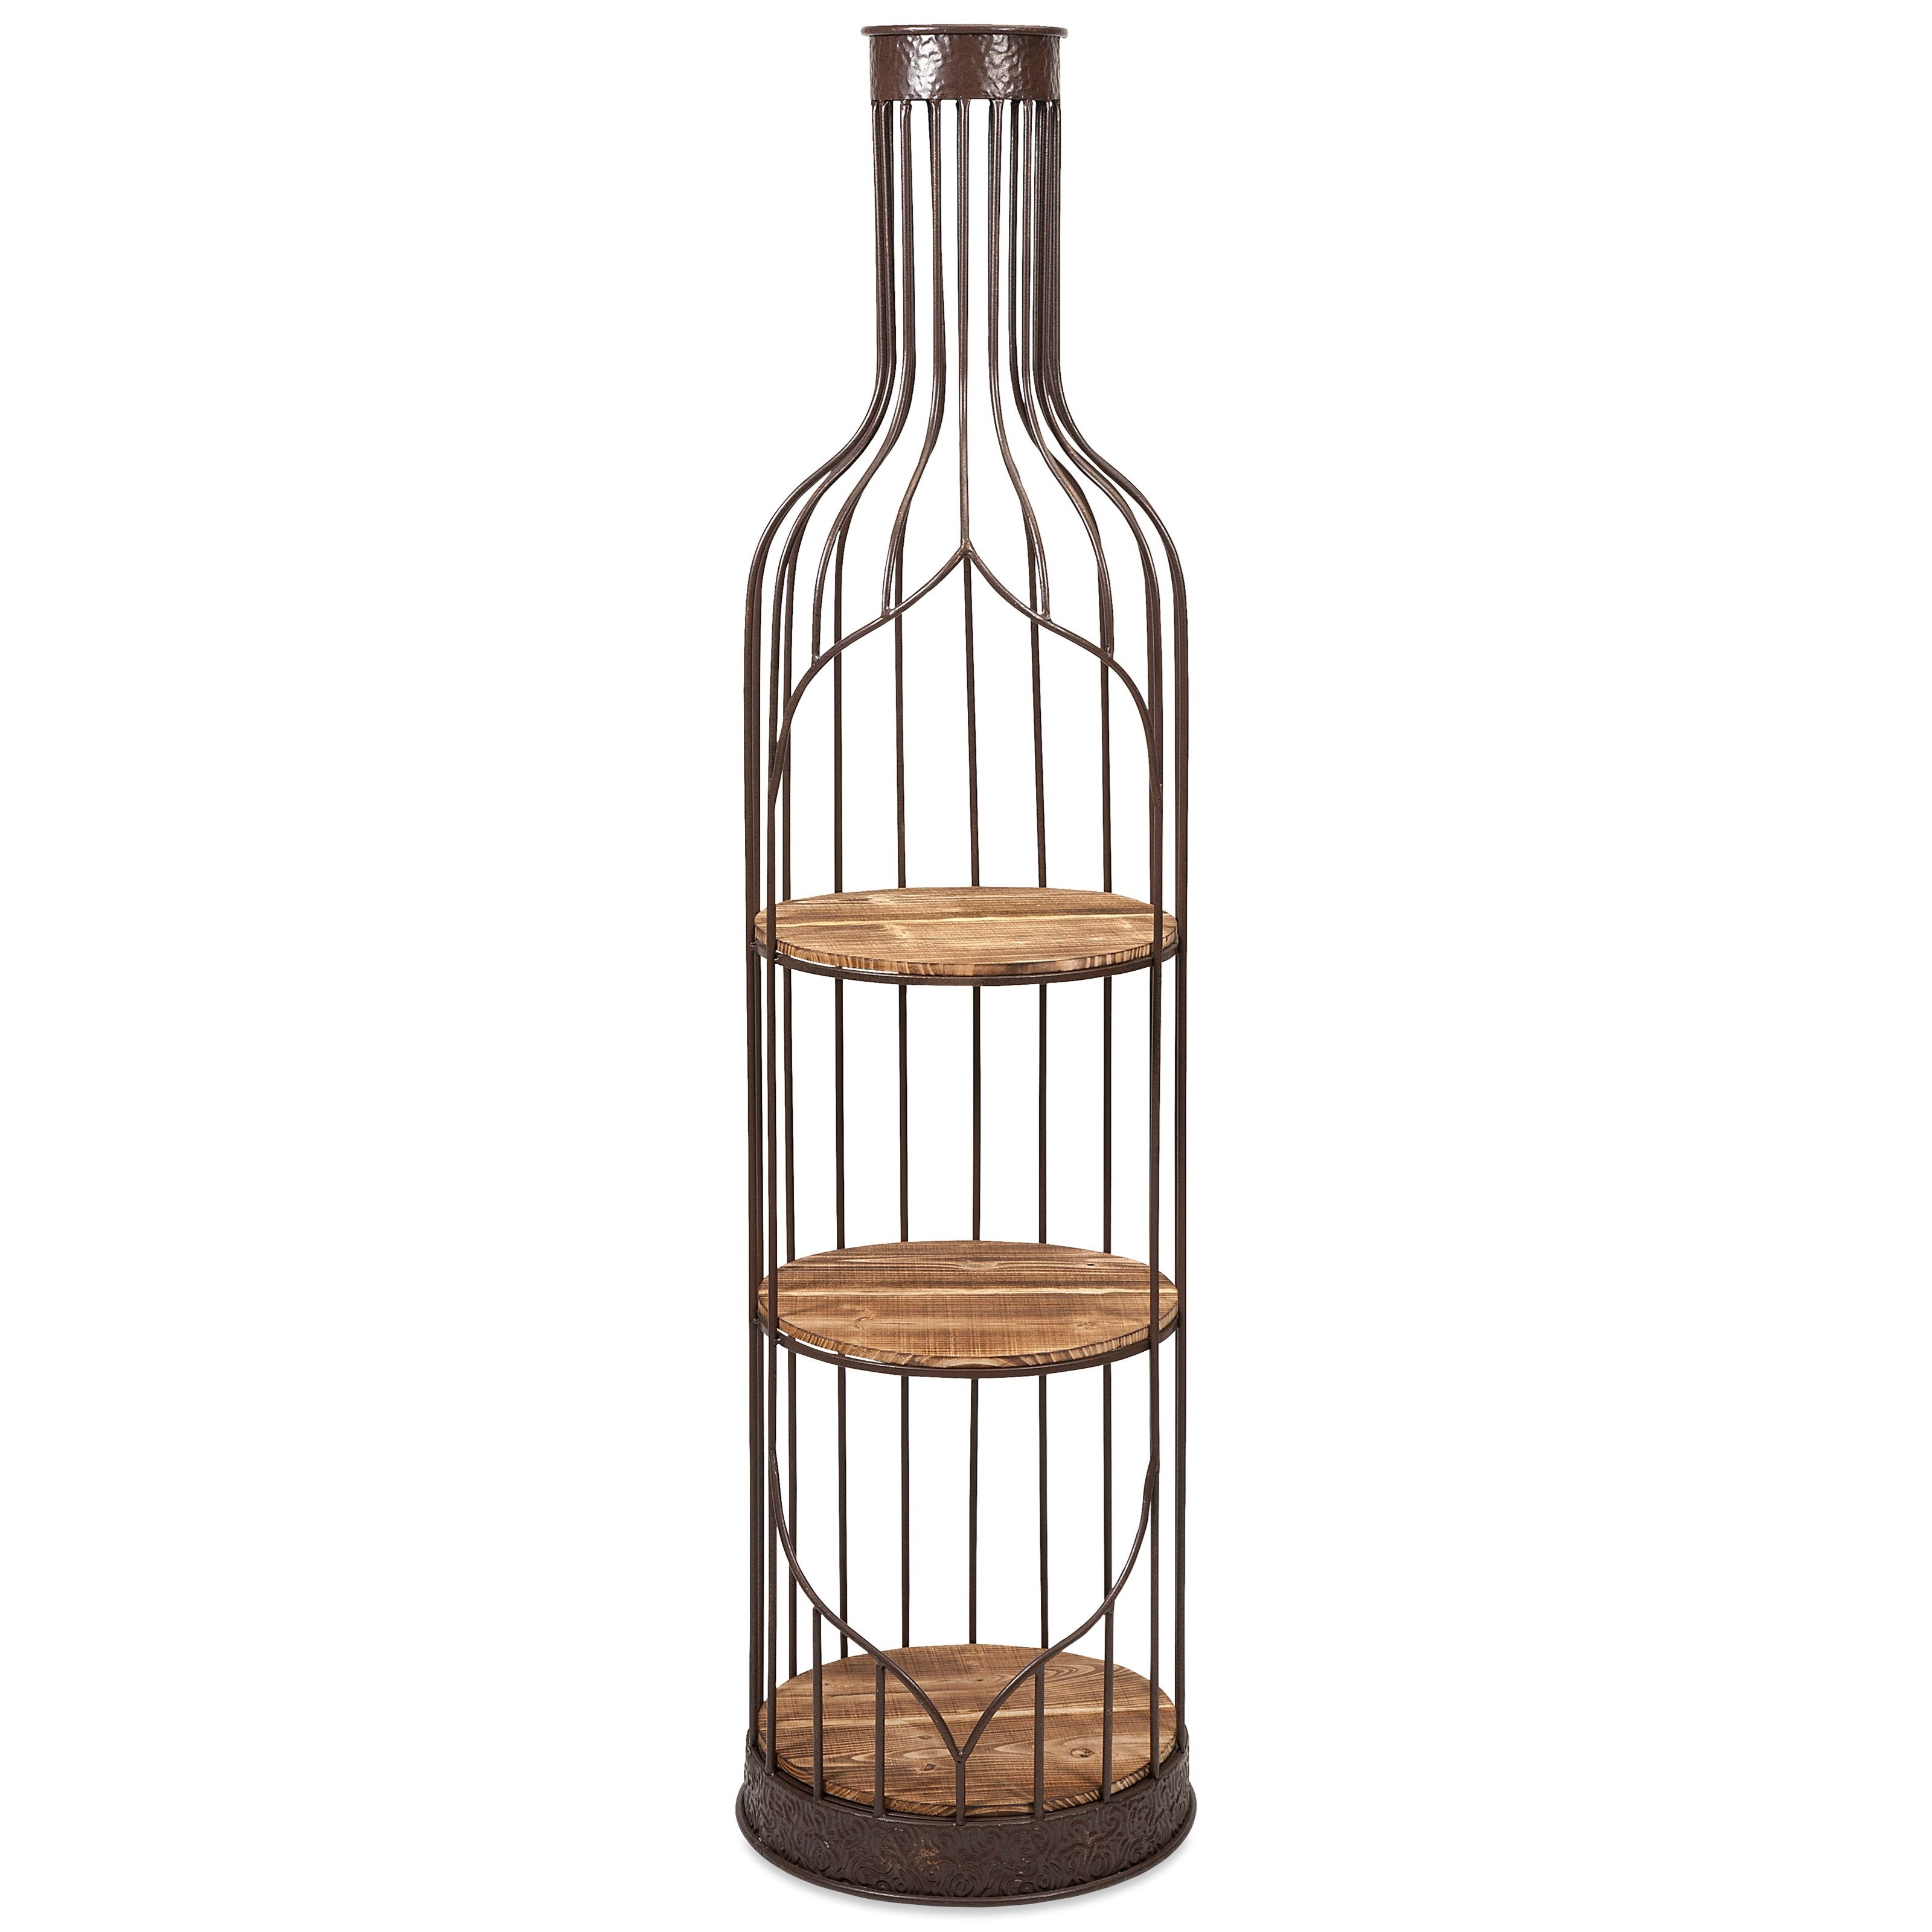 Accent Furniture Vino Wine Bottle Shelf by IMAX Worldwide Home at Alison Craig Home Furnishings